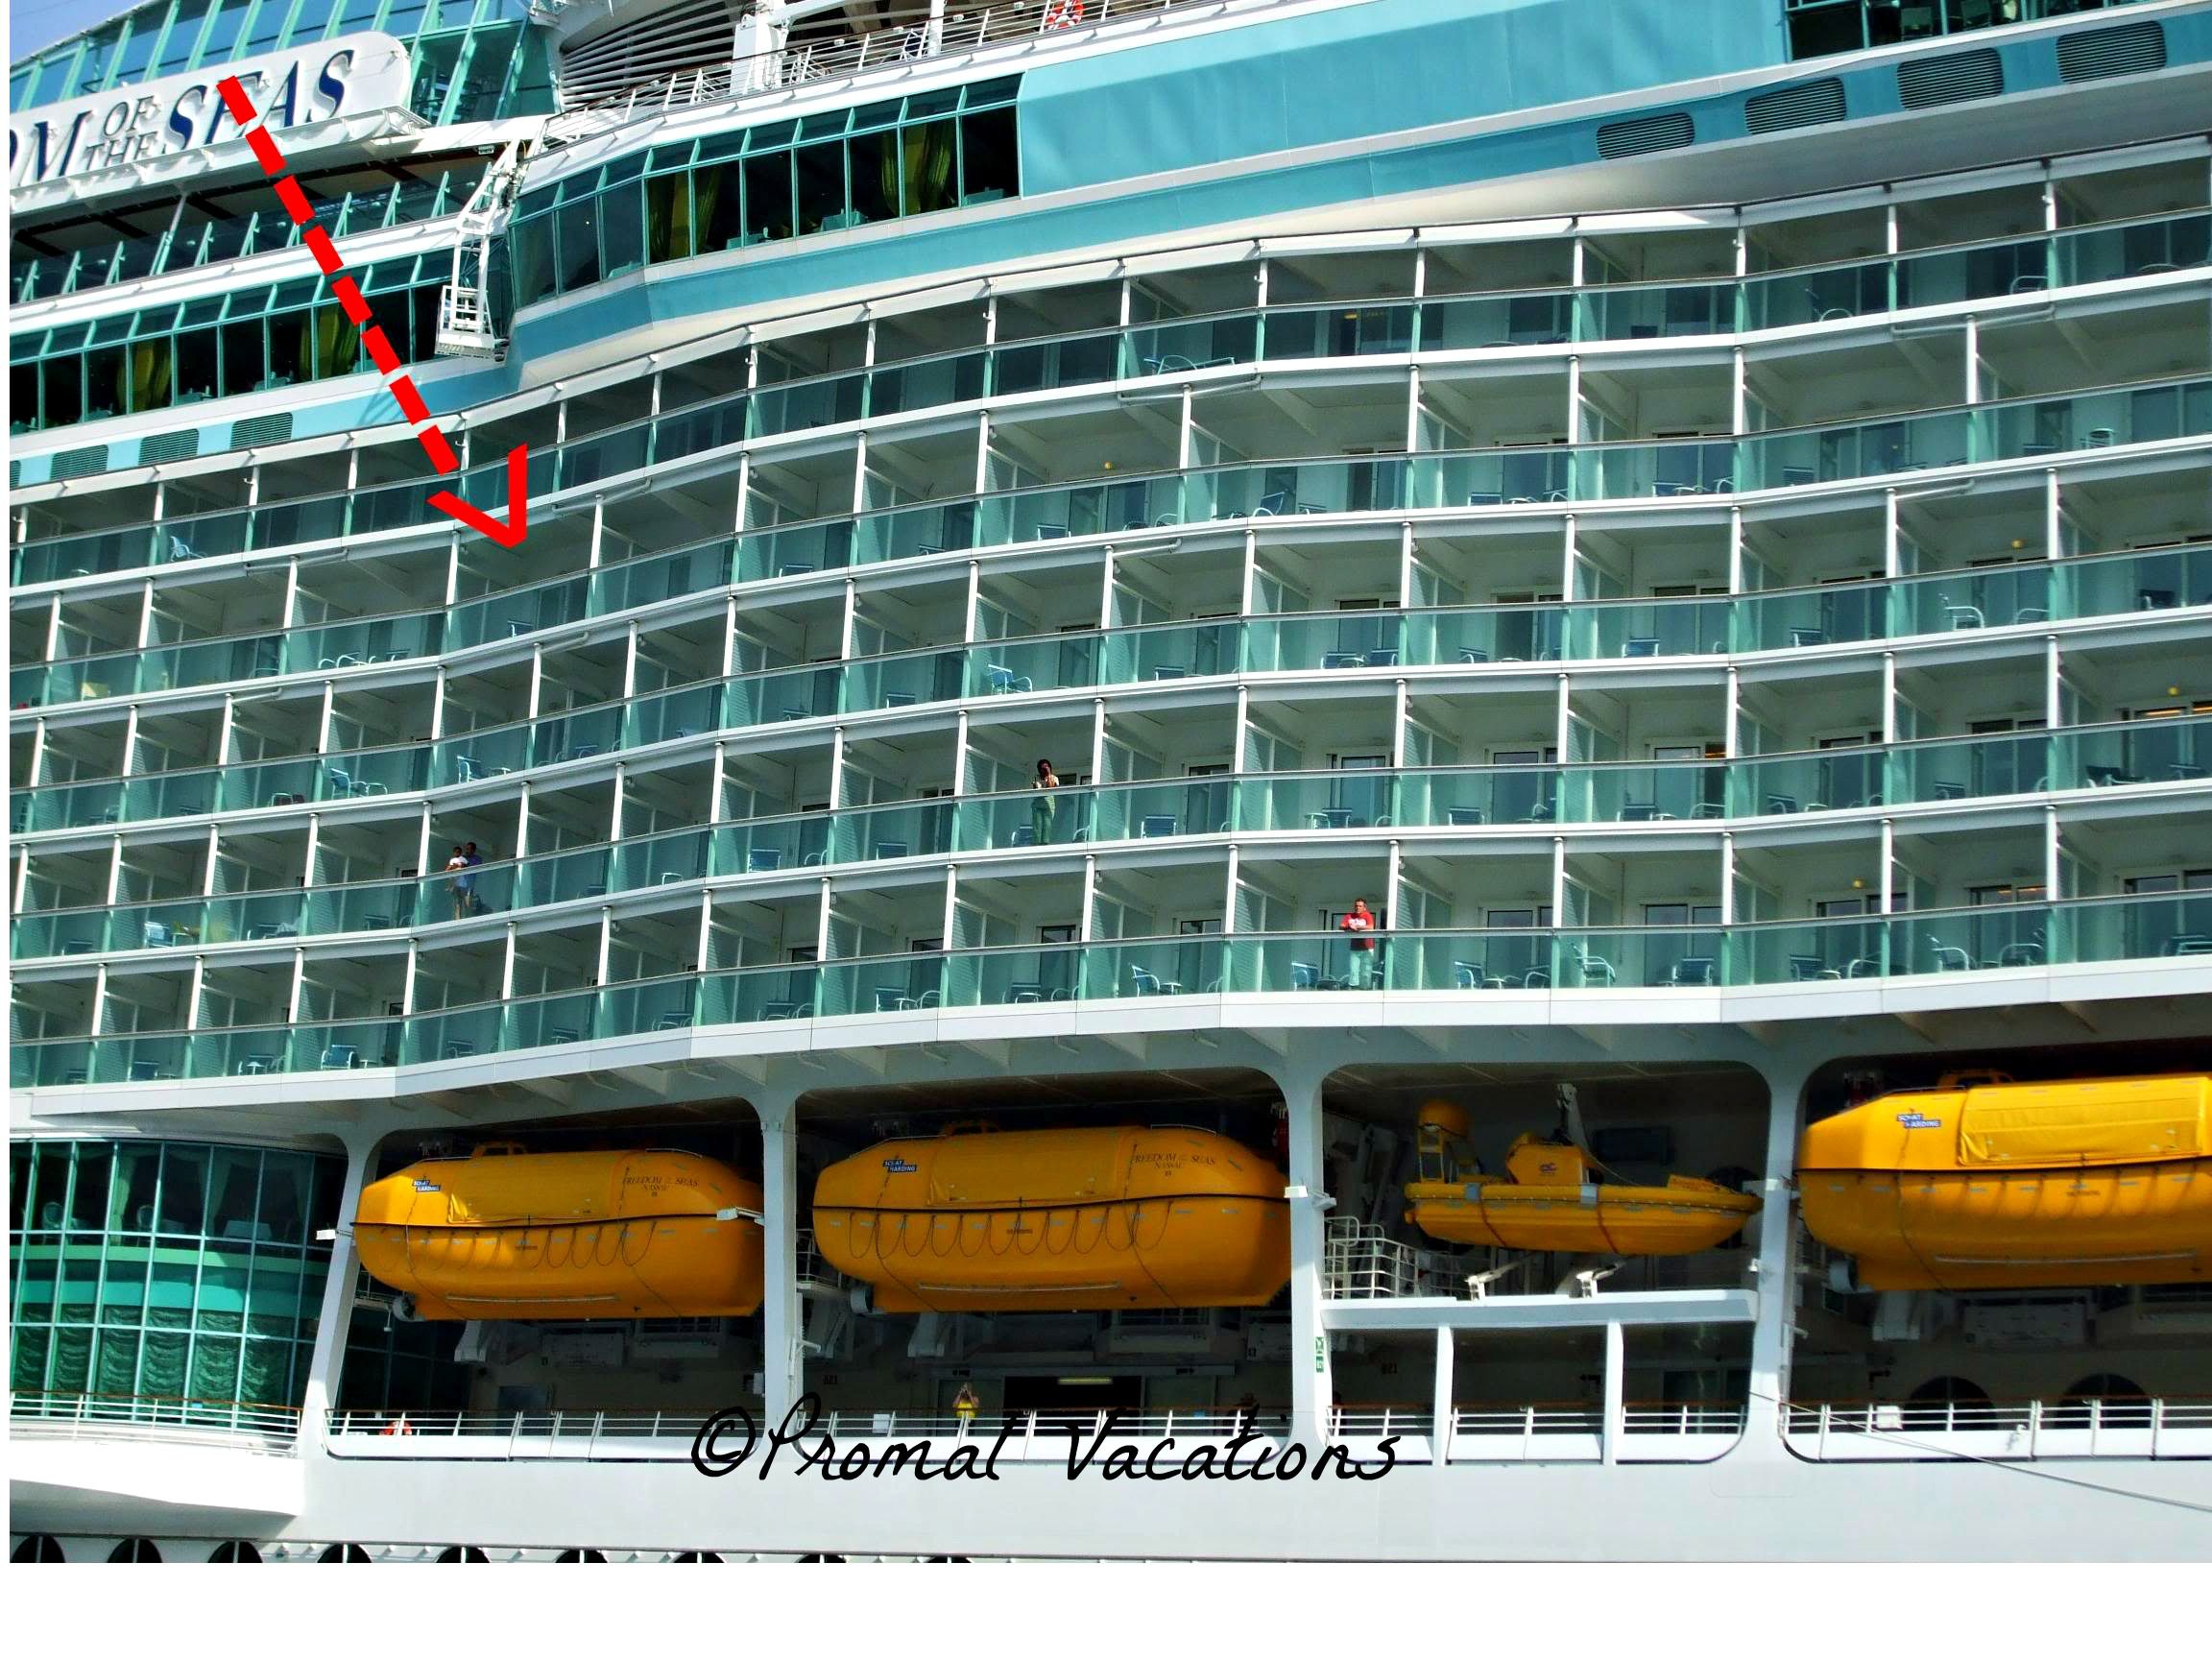 Location Of Our Hump Cabin And Look At The Views Later The More To The Center You Can Get The L Freedom Of The Seas Liberty Of The Seas Royal Caribbean